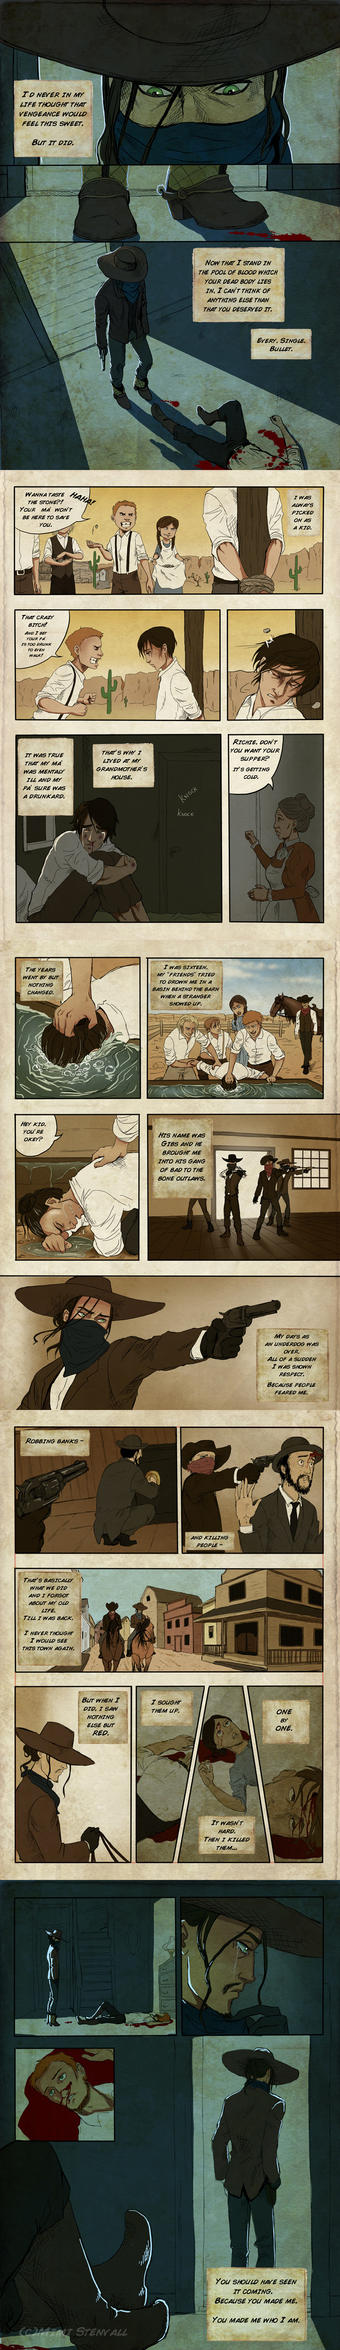 An outlaws tale by SilvesterVitale